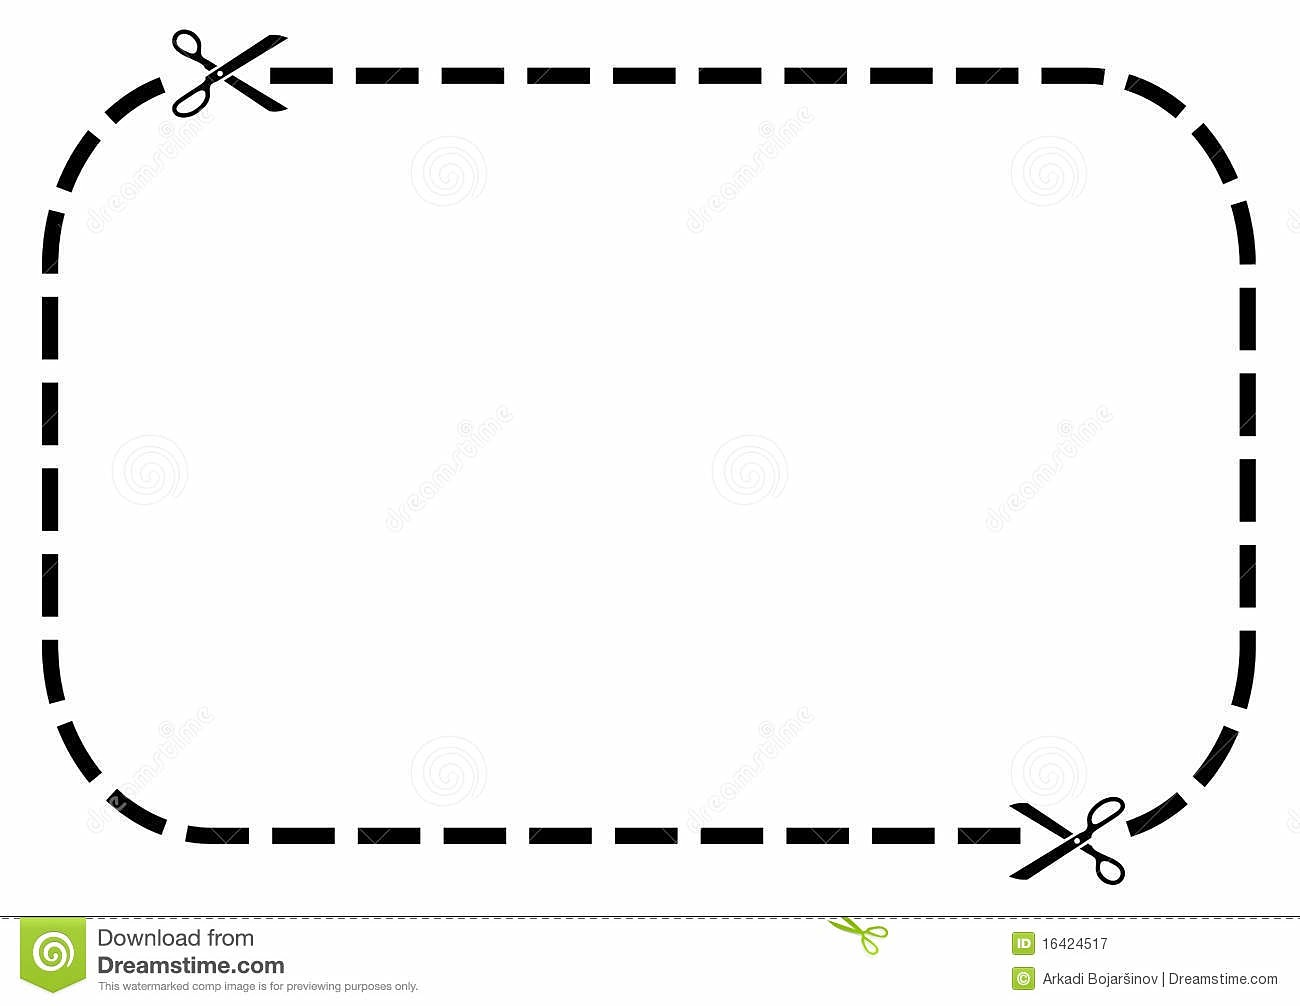 photo about On the Border Printable Coupons referred to as Variety of Coupon clipart No cost obtain great Coupon